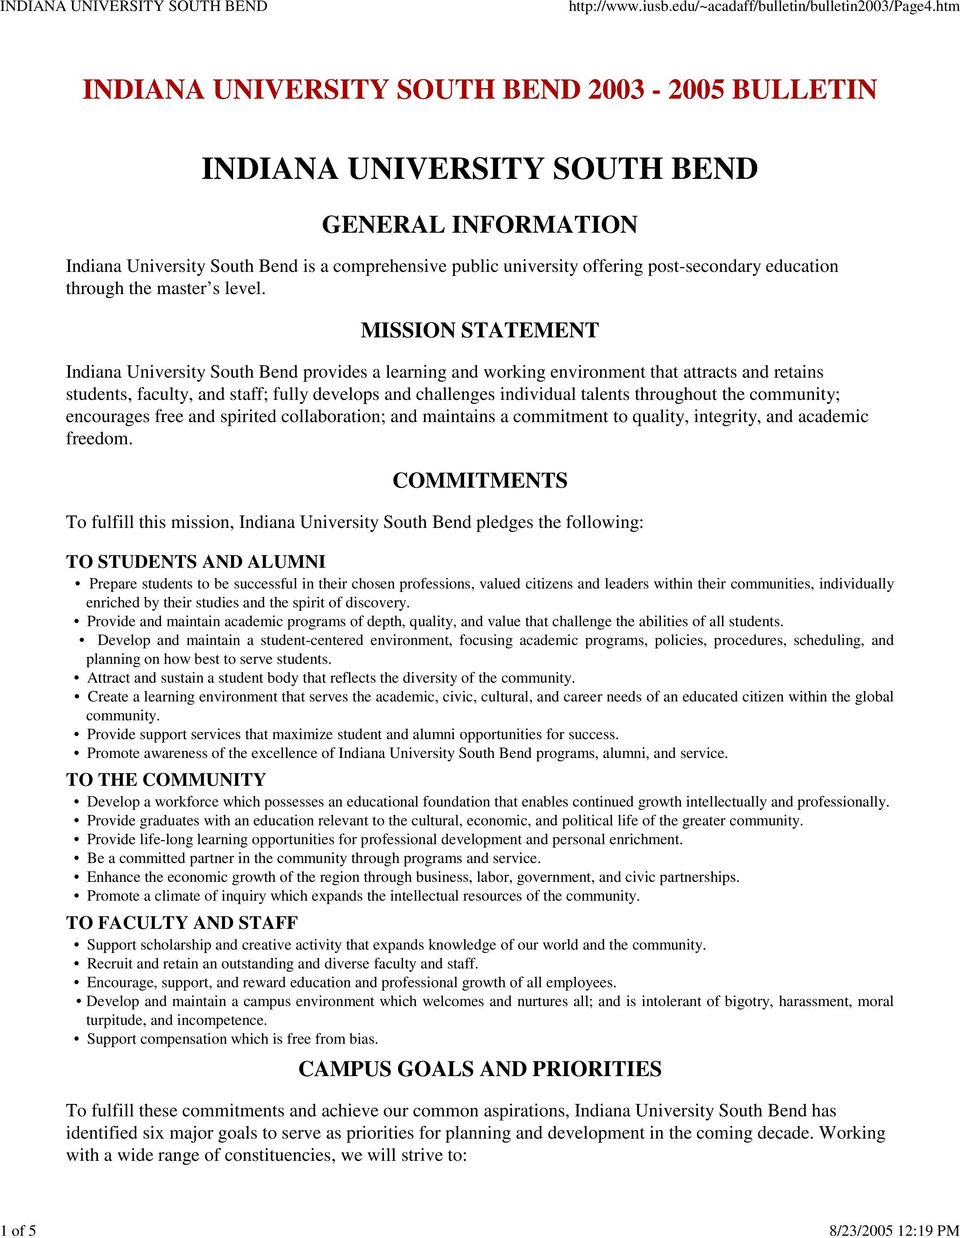 MISSION STATEMENT Indiana University South Bend provides a learning and working environment that attracts and retains students, faculty, and staff; fully develops and challenges individual talents